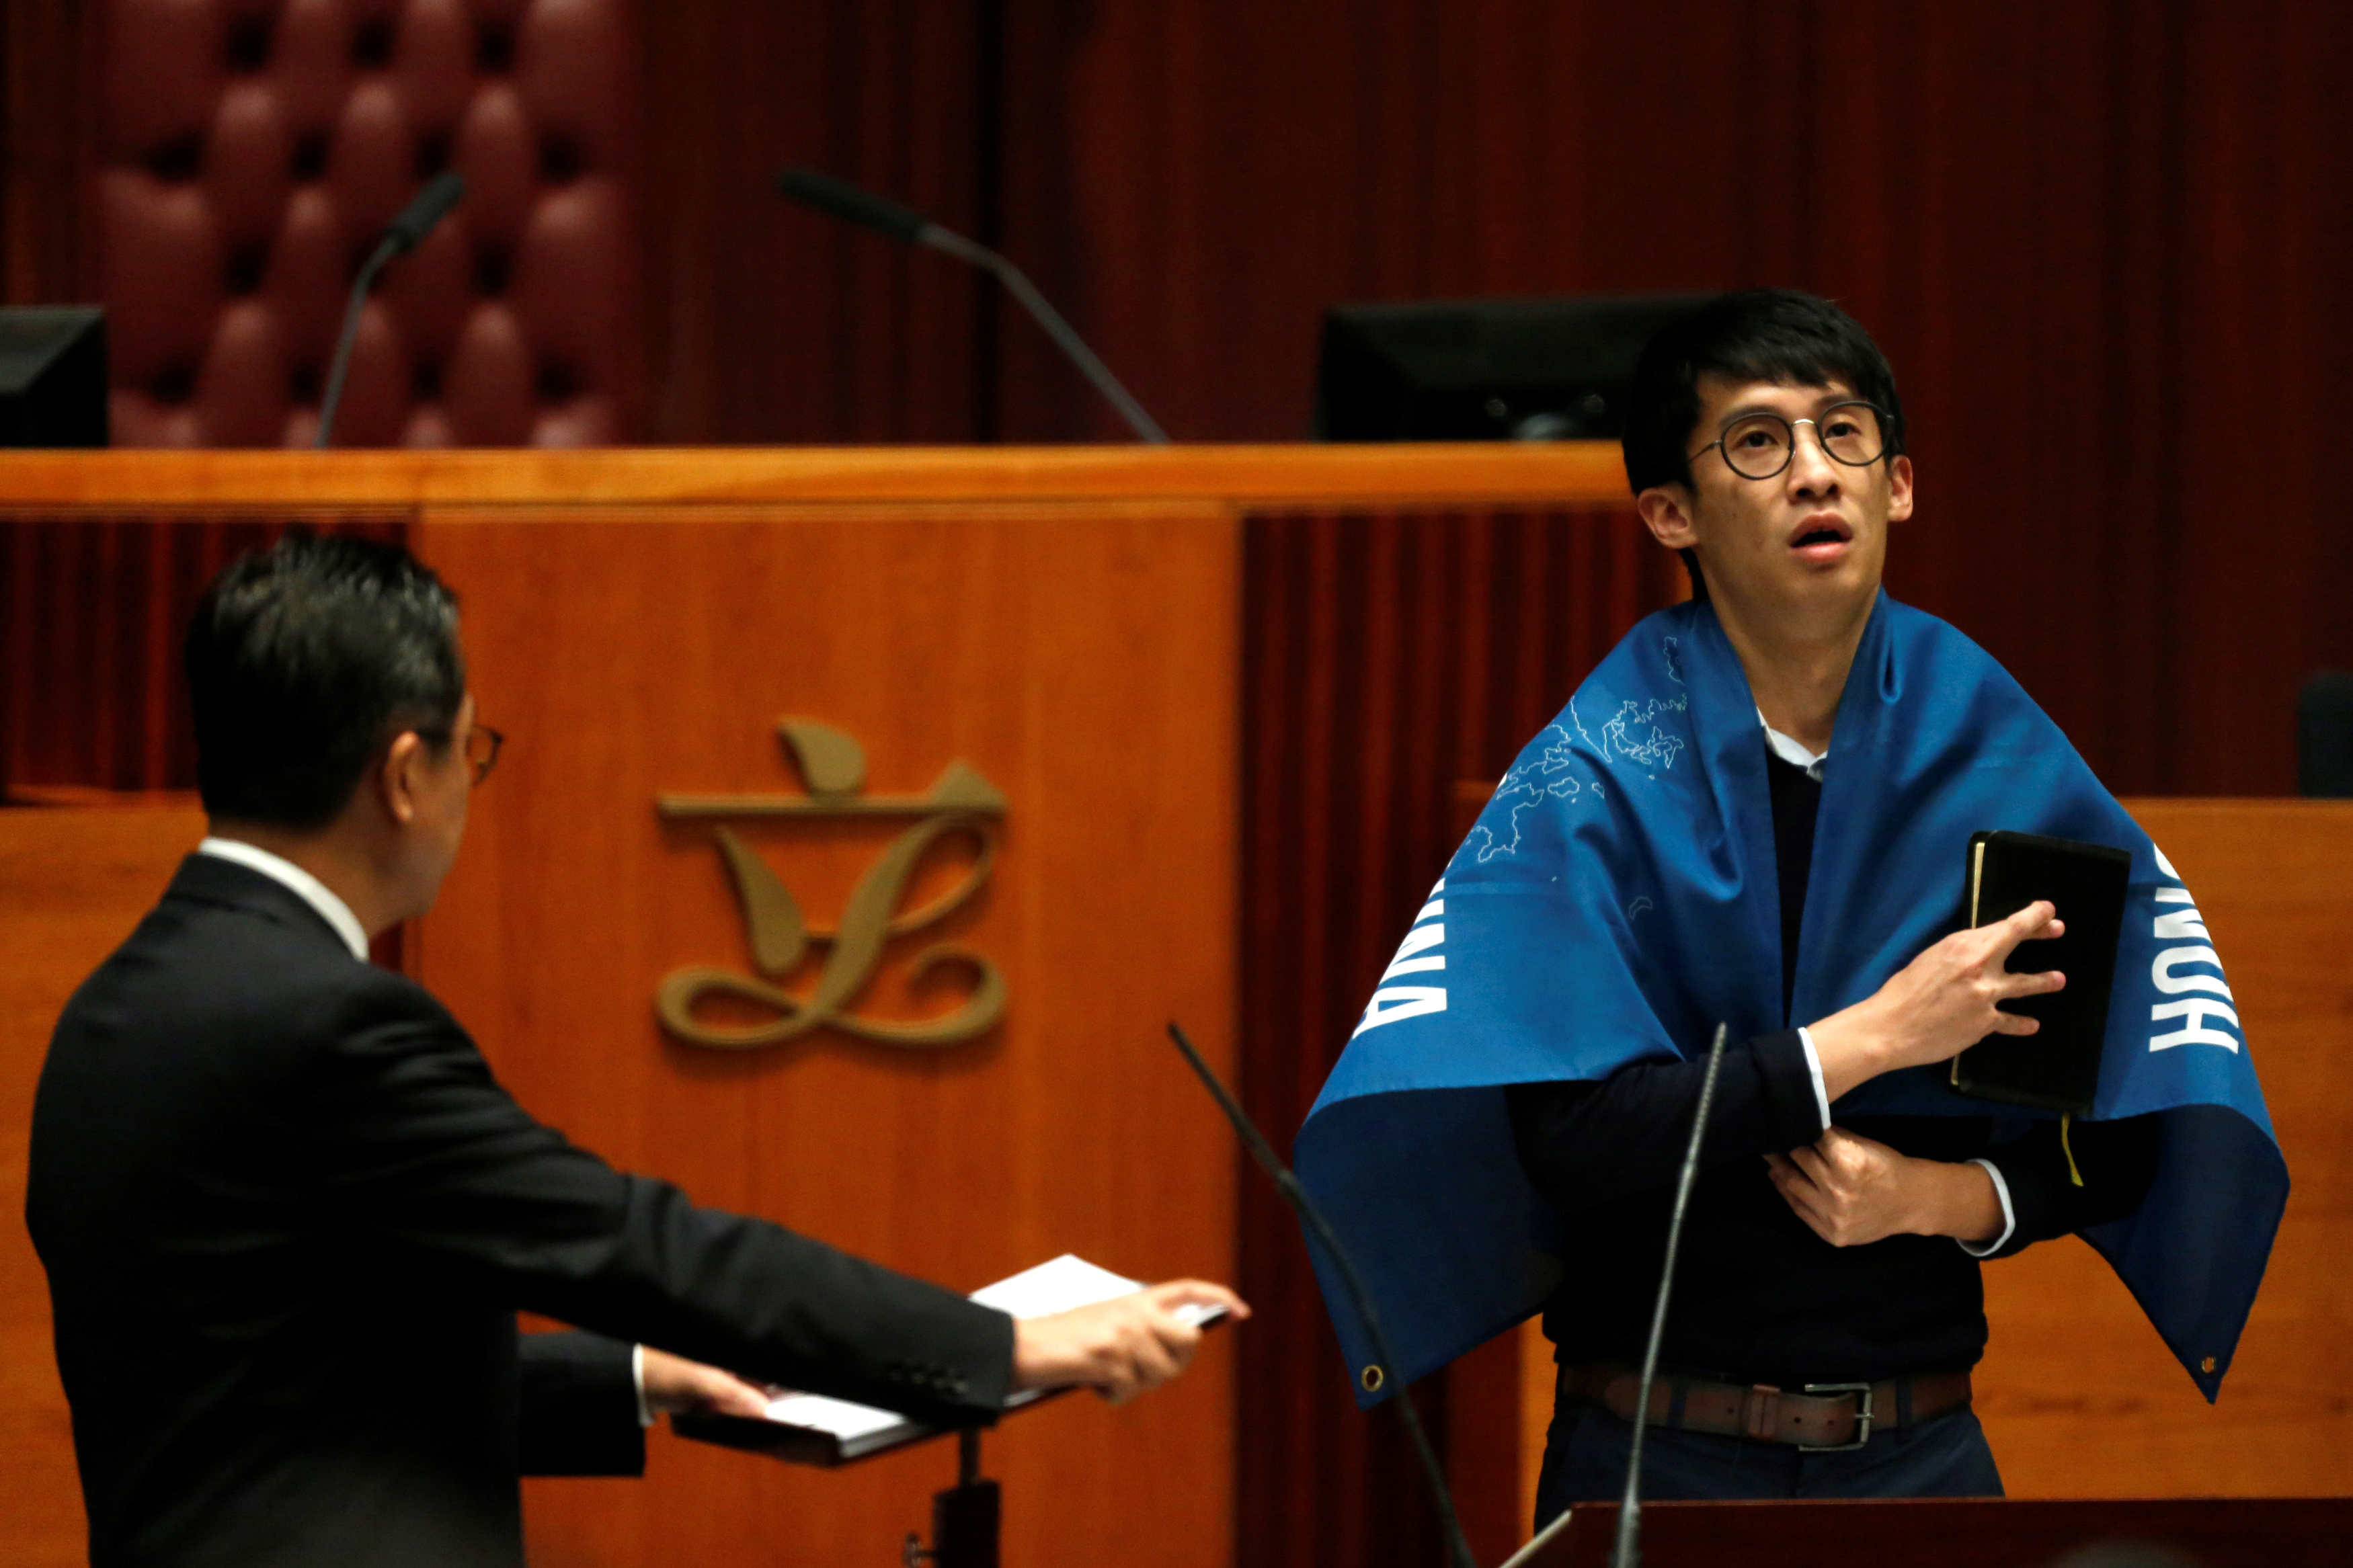 Newly elected lawmaker Sixtus  Baggio  Leung, right, wraps himself in a banner that says  Hong Kong Is Not China  while taking oath at the Legislative Council in Hong Kong on Oct. 12, 2016